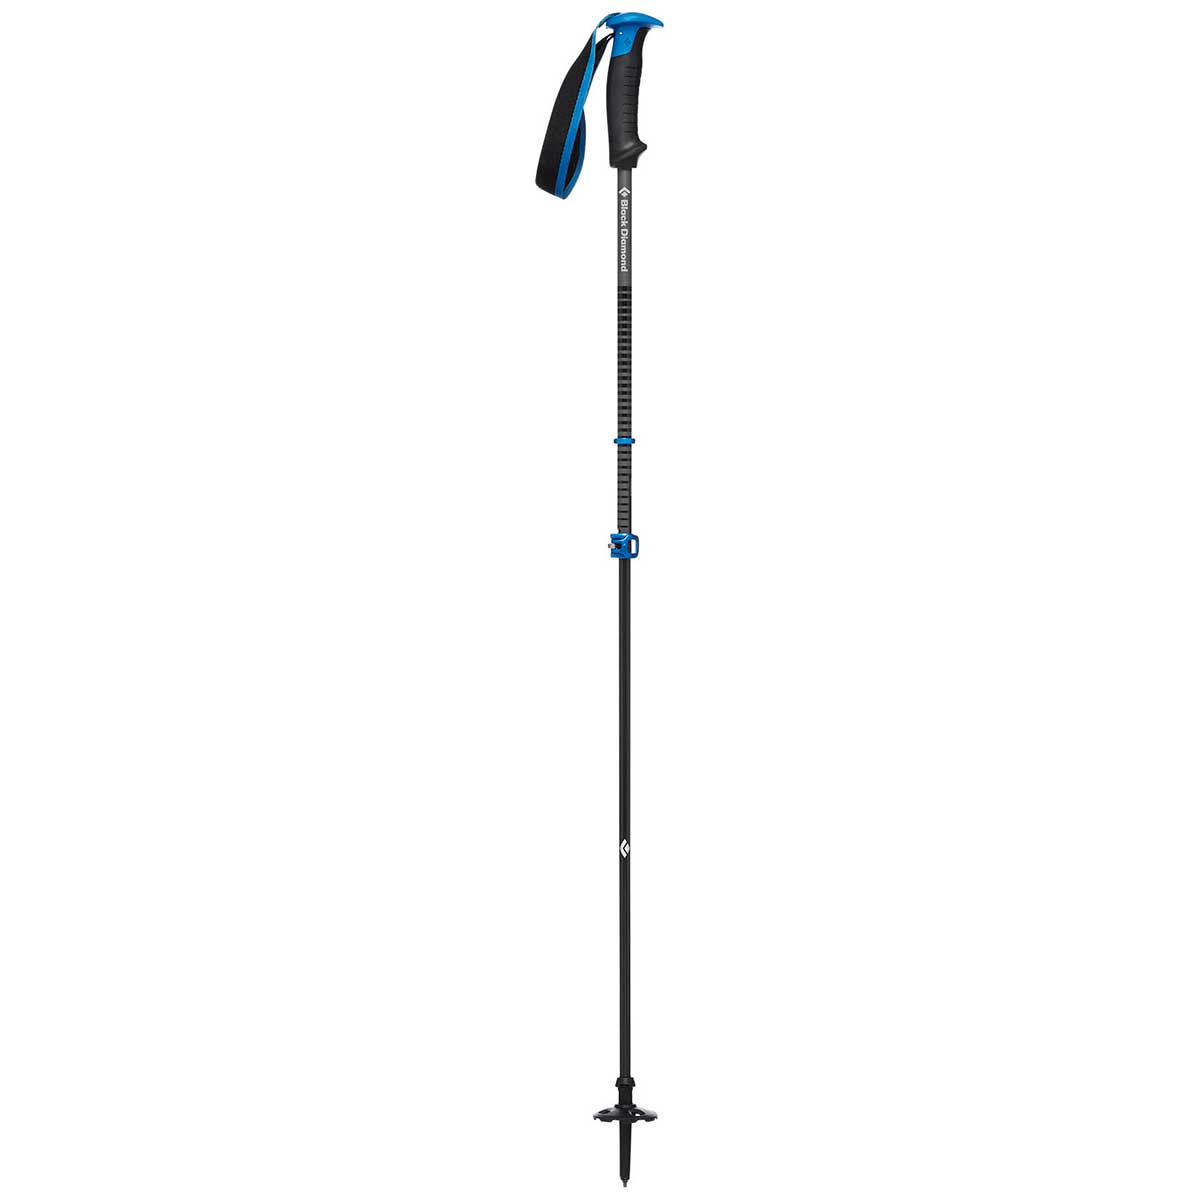 Black Diamond Razer Carbon Pro Pole in One Color main view